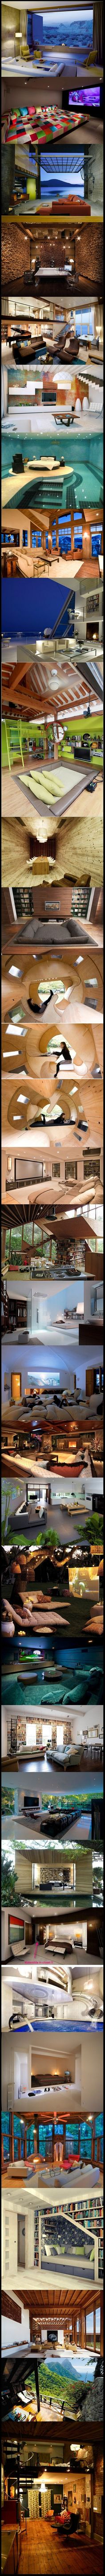 An album of some of the world's craziest rooms